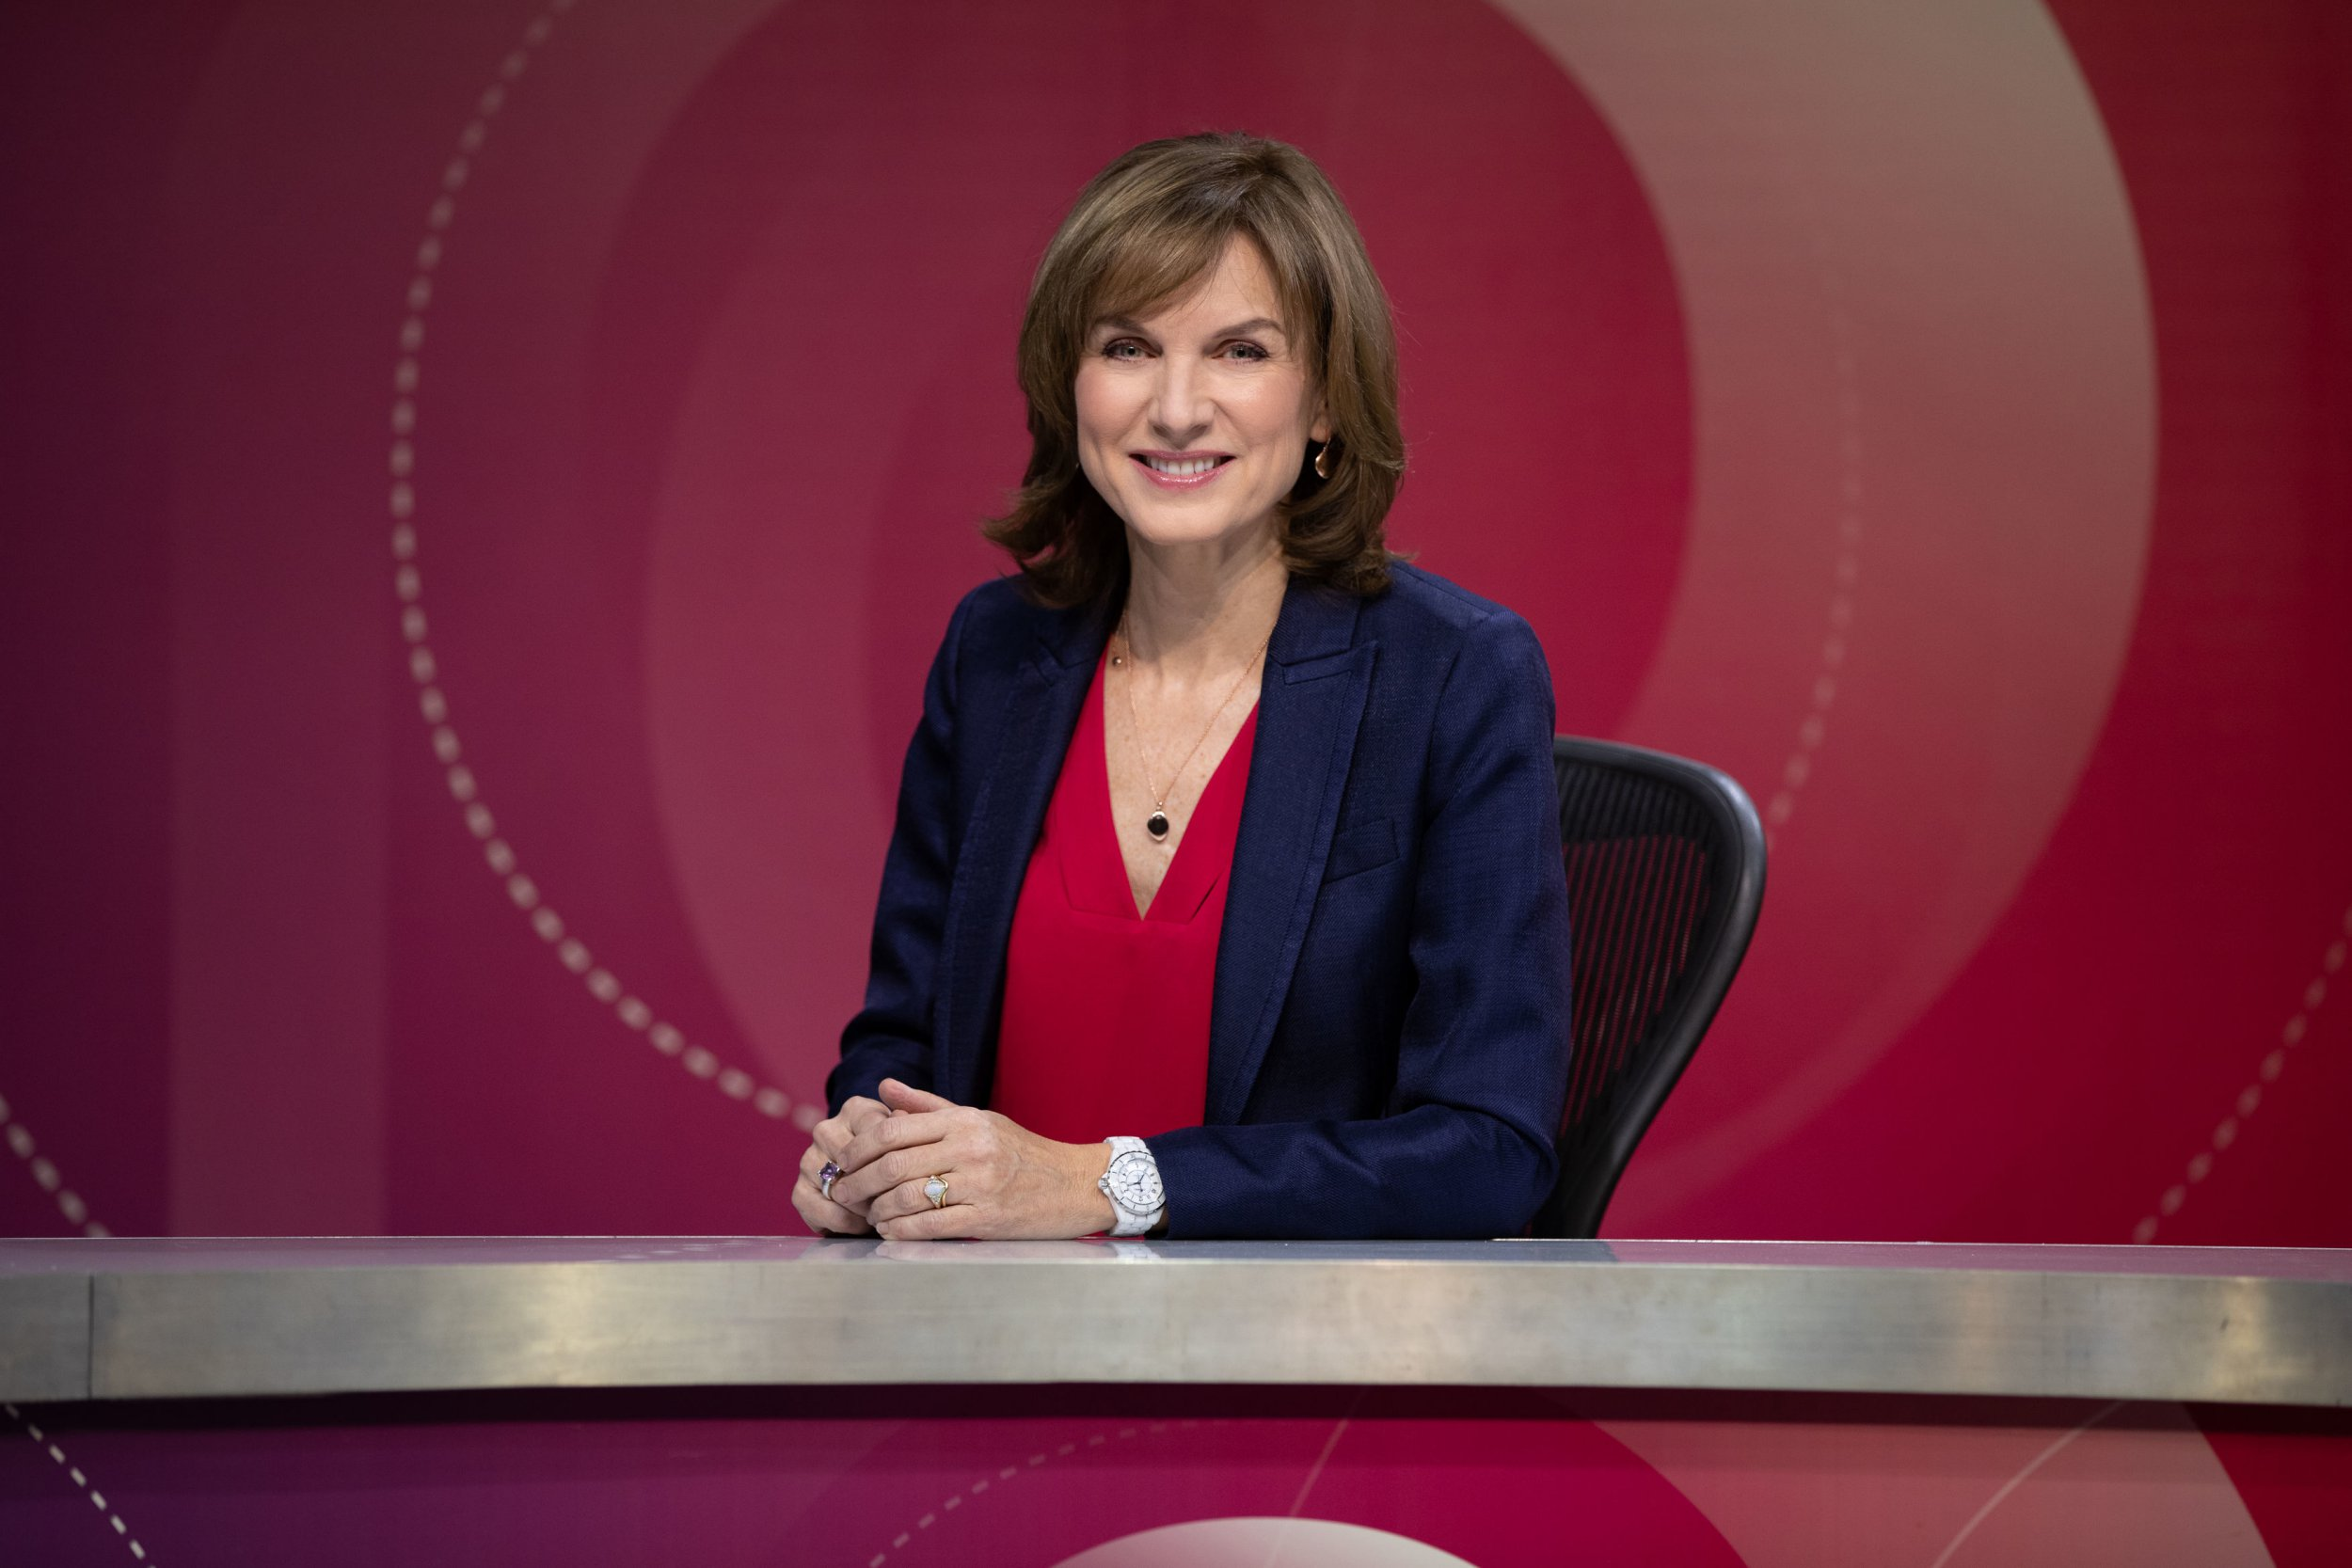 For use in UK, Ireland or Benelux countries only BBC handout photo of Fiona Bruce on the set of Question Time as she takes over as host for the programme. PRESS ASSOCIATION Photo. Issue date: Thursday January 10, 2019. The news broadcaster and Antiques Roadshow presenter was announced as David Dimbleby's replacement on the political programme in December when he stepped down. See PA story SHOWBIZ Bruce. Photo credit should read: Richard Lewisohn/BBC/PA Wire NOTE TO EDITORS: Not for use more than 21 days after issue. You may use this picture without charge only for the purpose of publicising or reporting on current BBC programming, personnel or other BBC output or activity within 21 days of issue. Any use after that time MUST be cleared through BBC Picture Publicity. Please credit the image to the BBC and any named photographer or independent programme maker, as described in the caption.